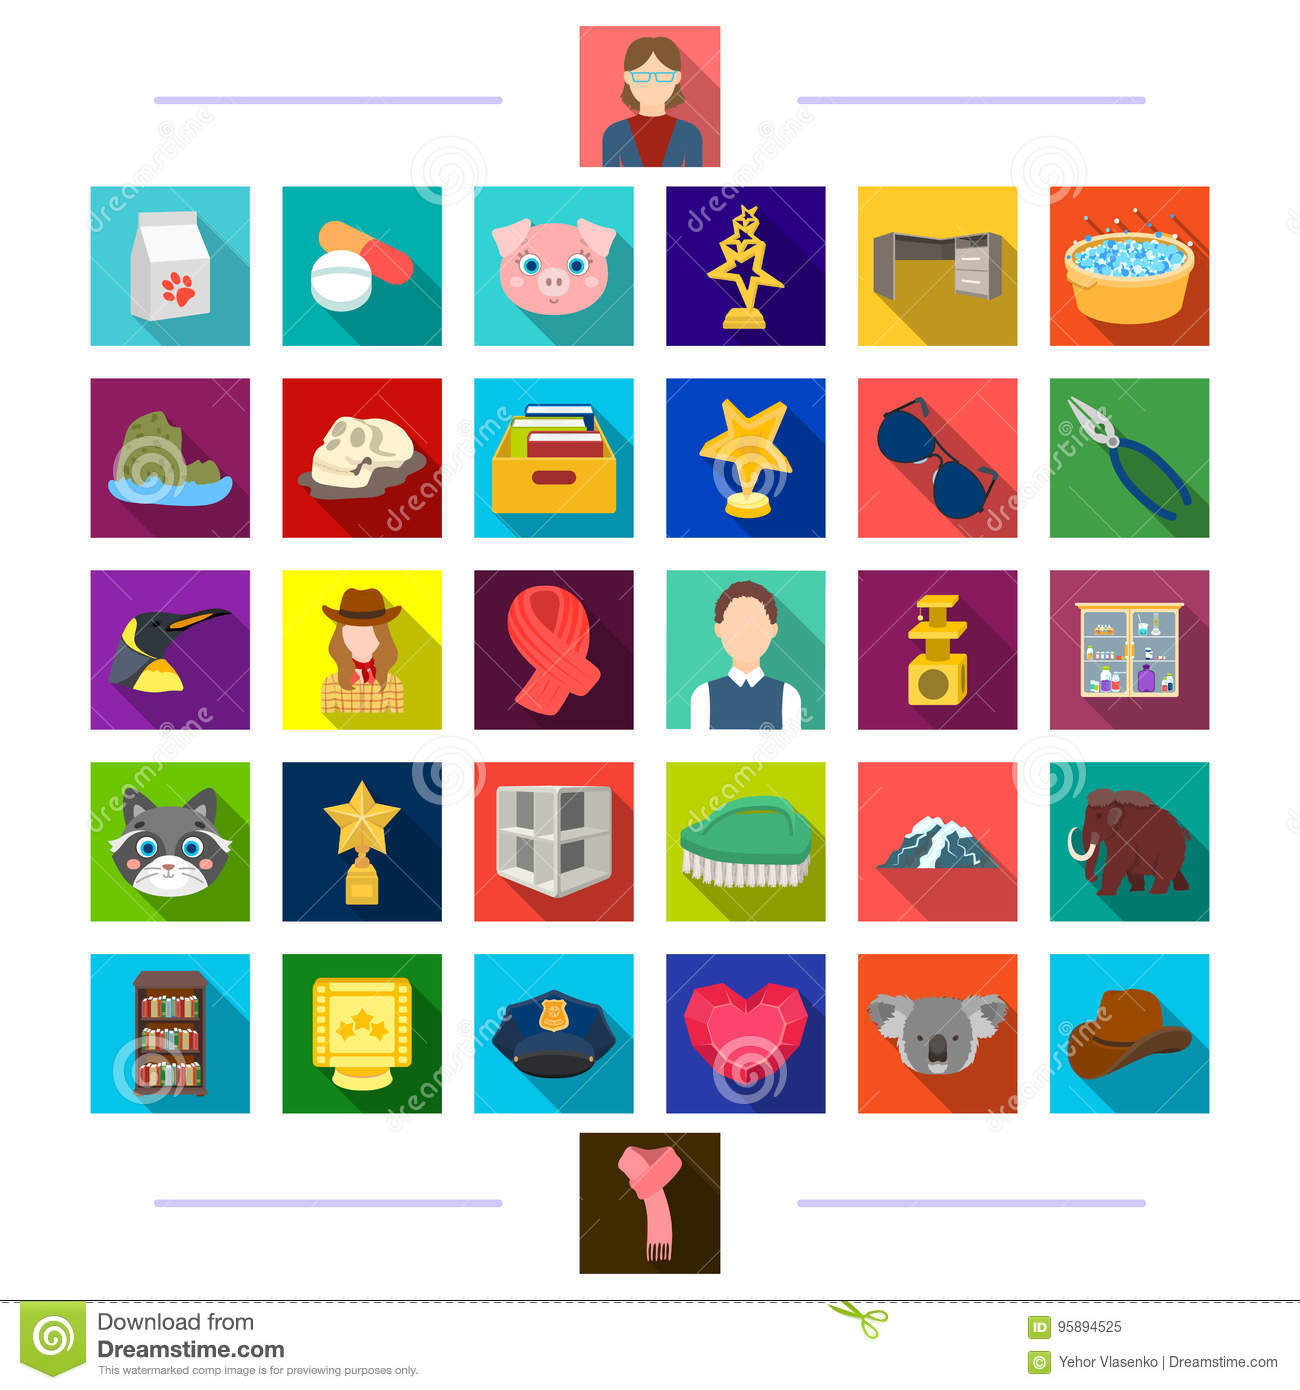 Cinematography, recreation, furniture and other web icon in flat style.achievement, medicine, animals icons in set